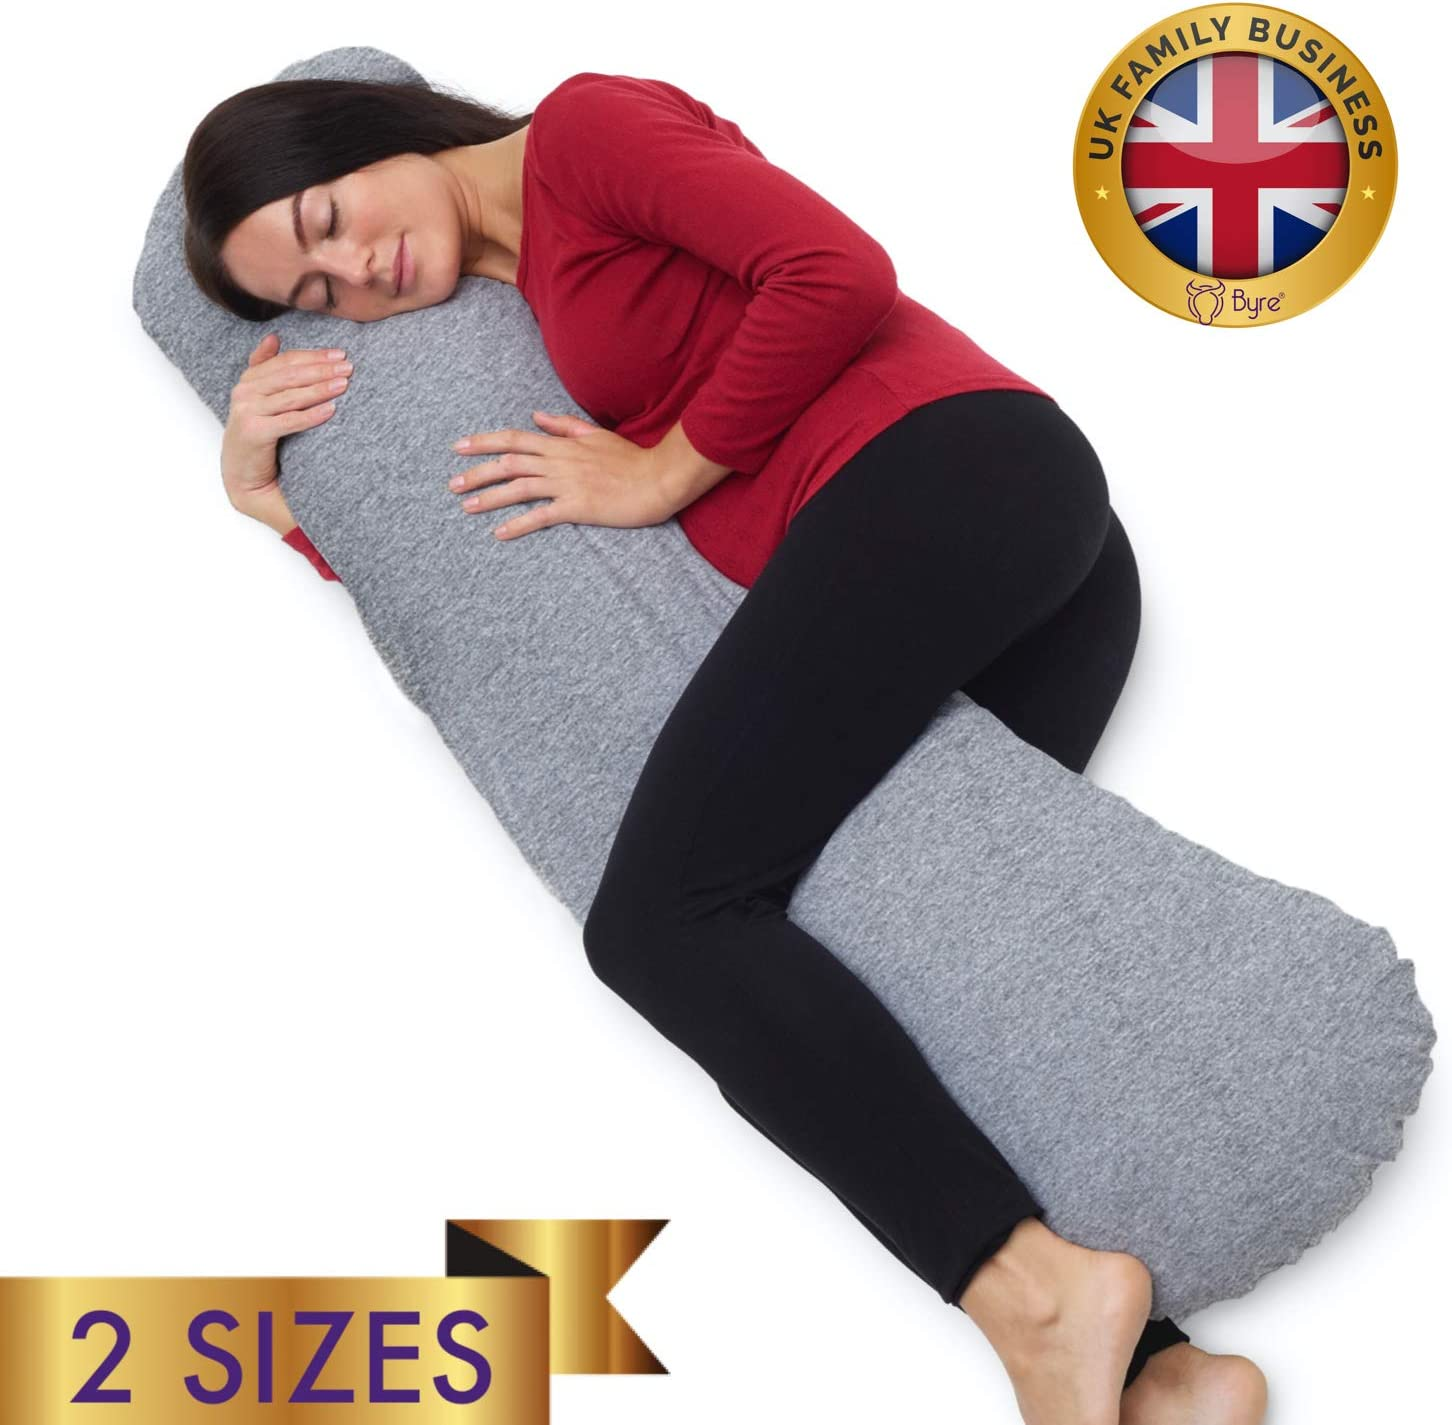 PharMeDoc Elevating Leg Rest Pillow